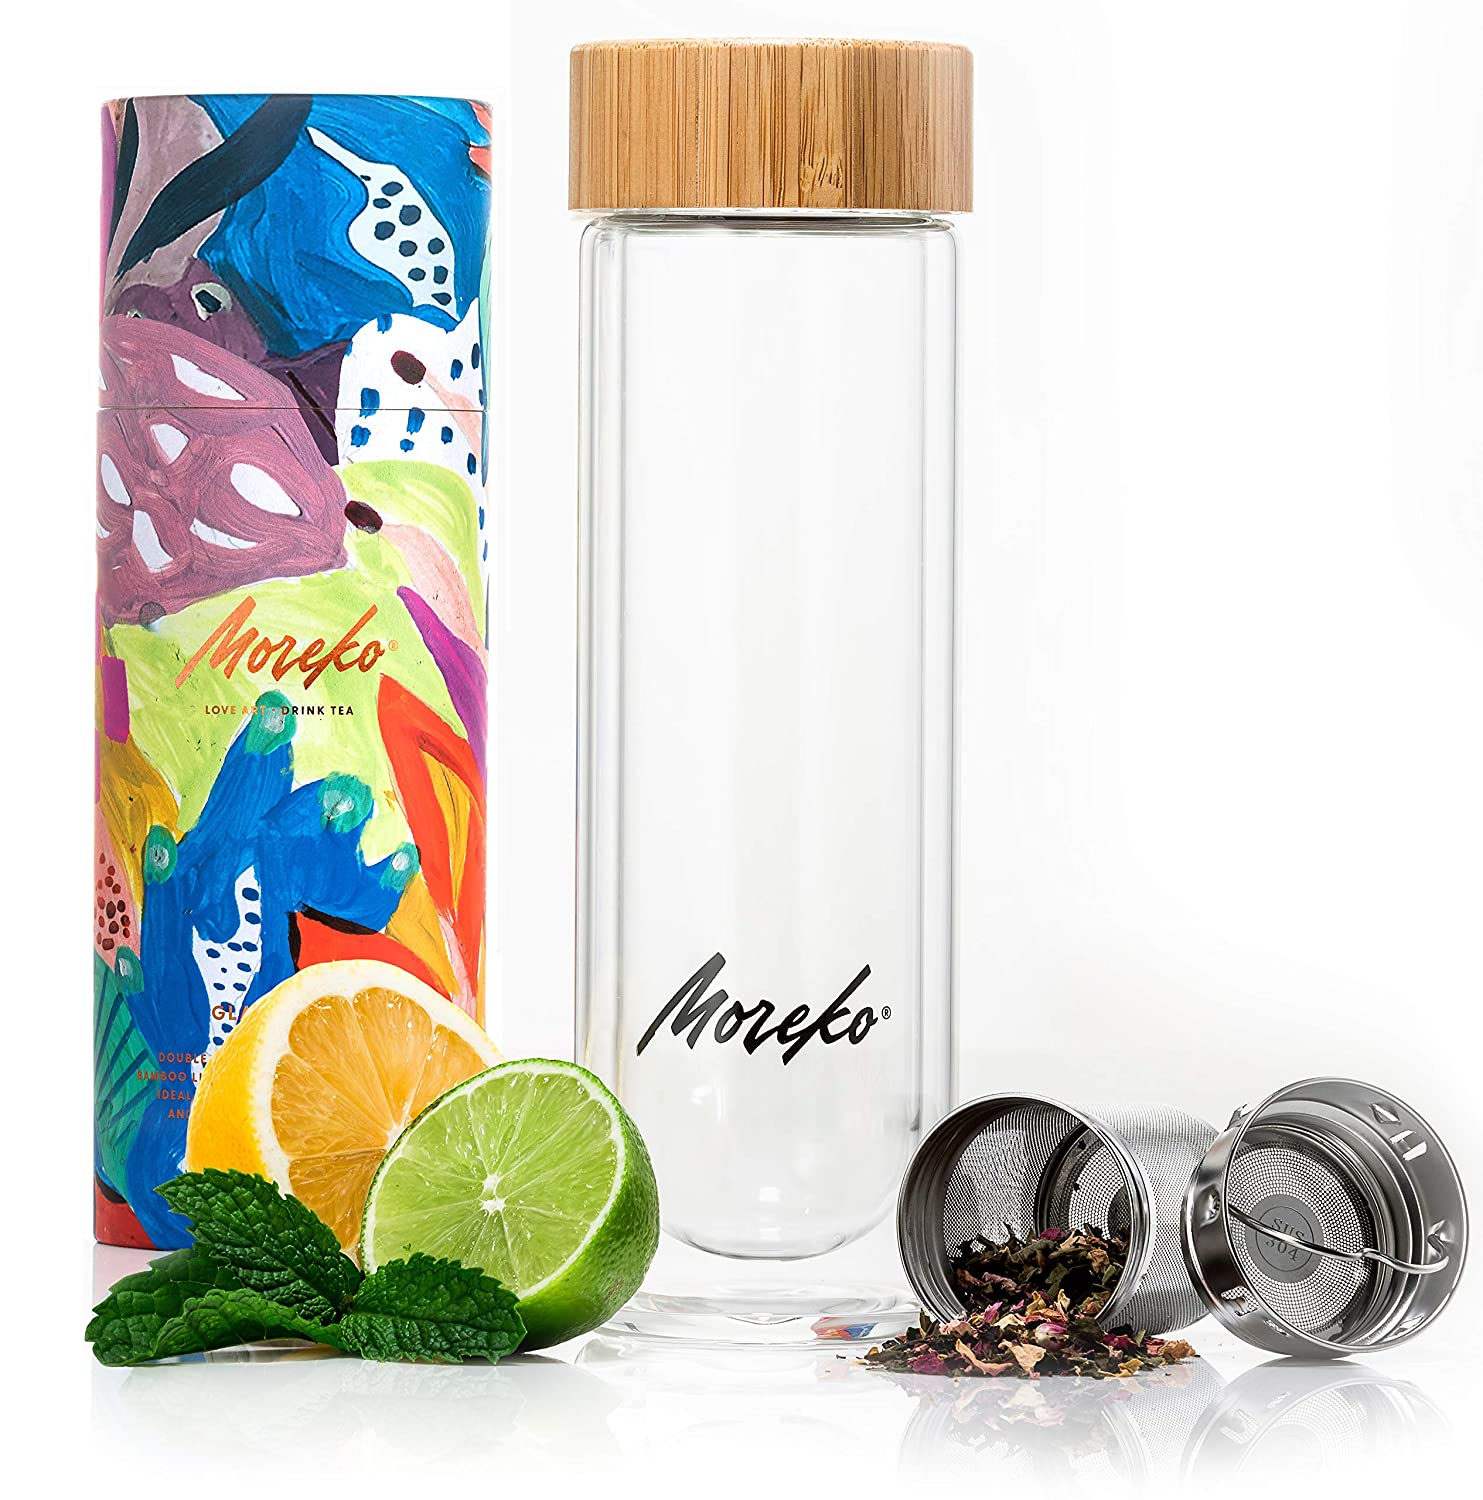 Moreko Stylish Drink Tumbler and Bottle with Tea Infuser Basket and Strainer, Double Wall Glass, Bamboo Lid, 15 oz.